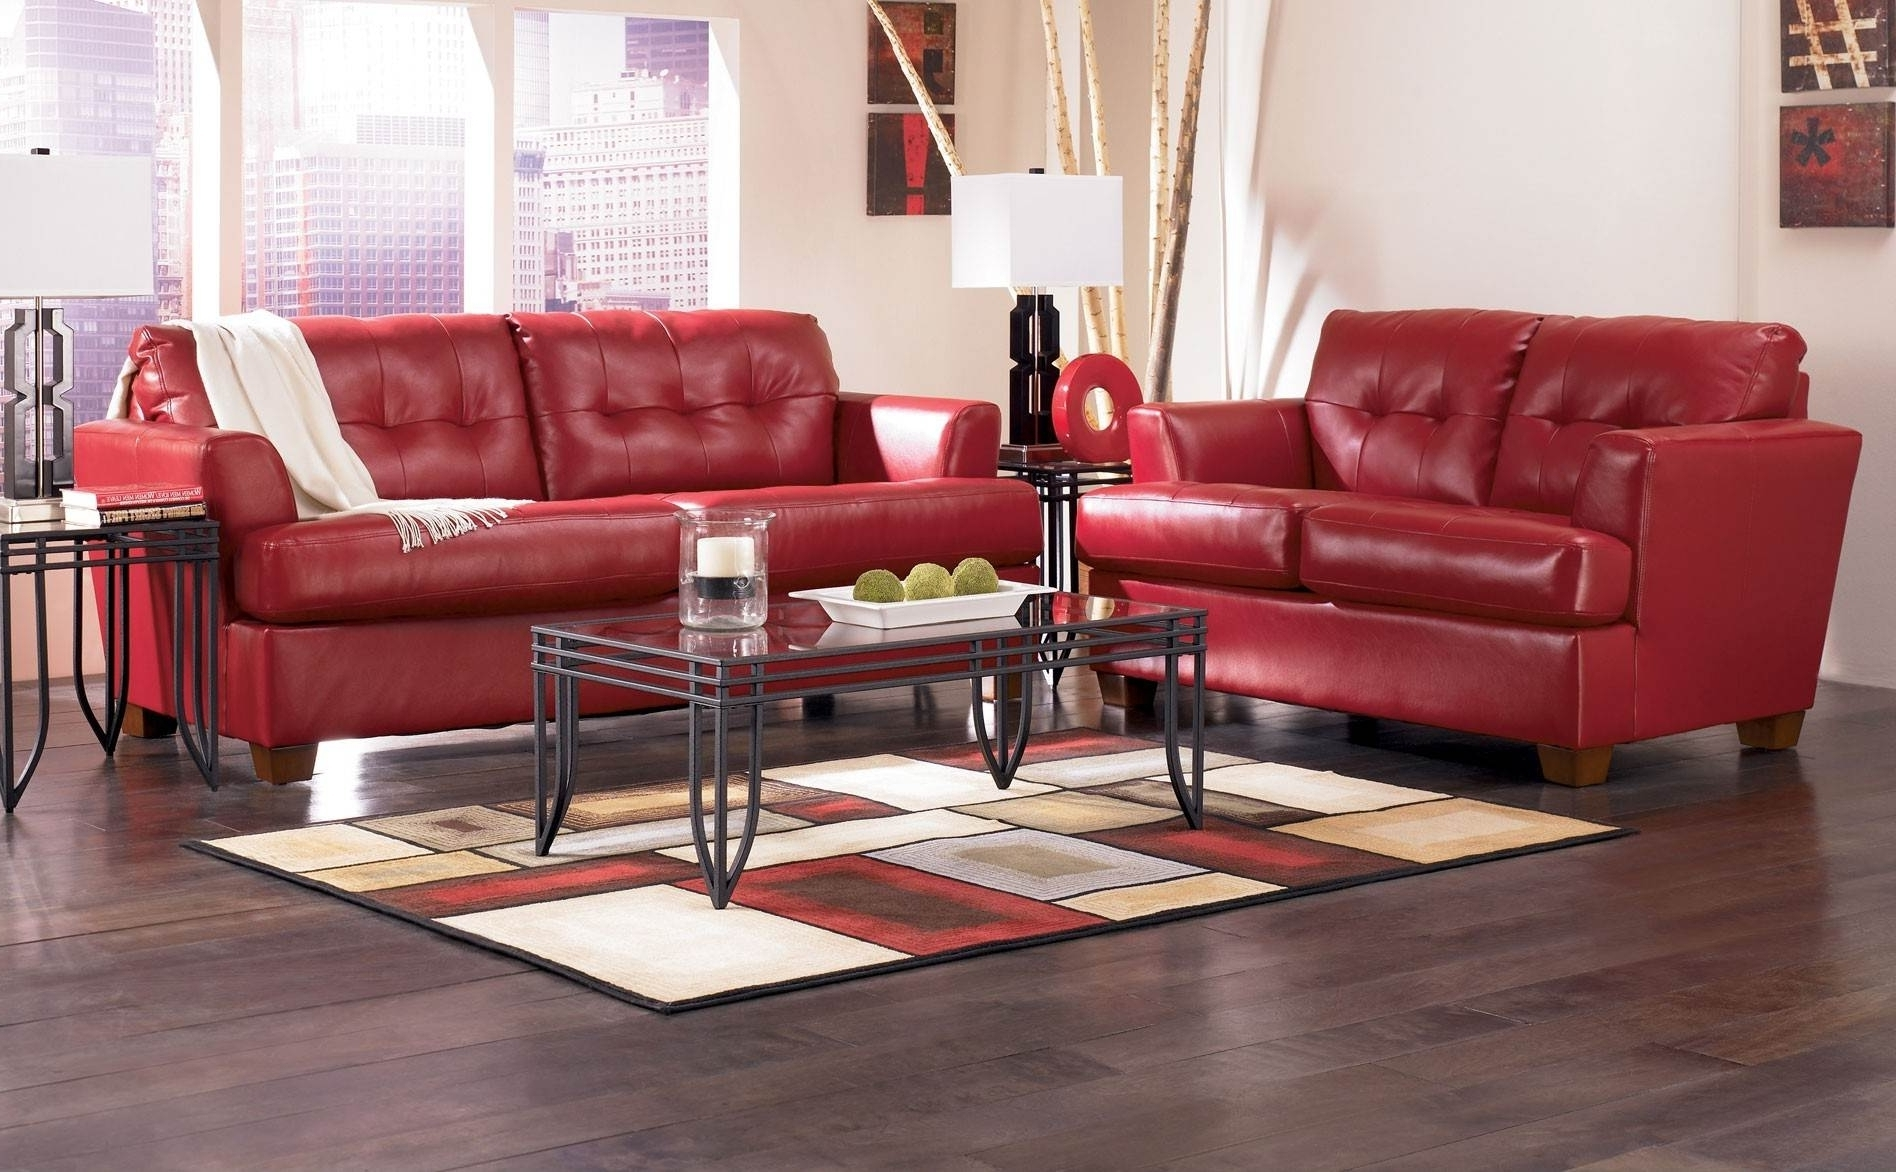 Red Leather Couches For Living Room Within Best And Newest Living Room Decorating Ideas With Red Leather Couch (View 20 of 20)